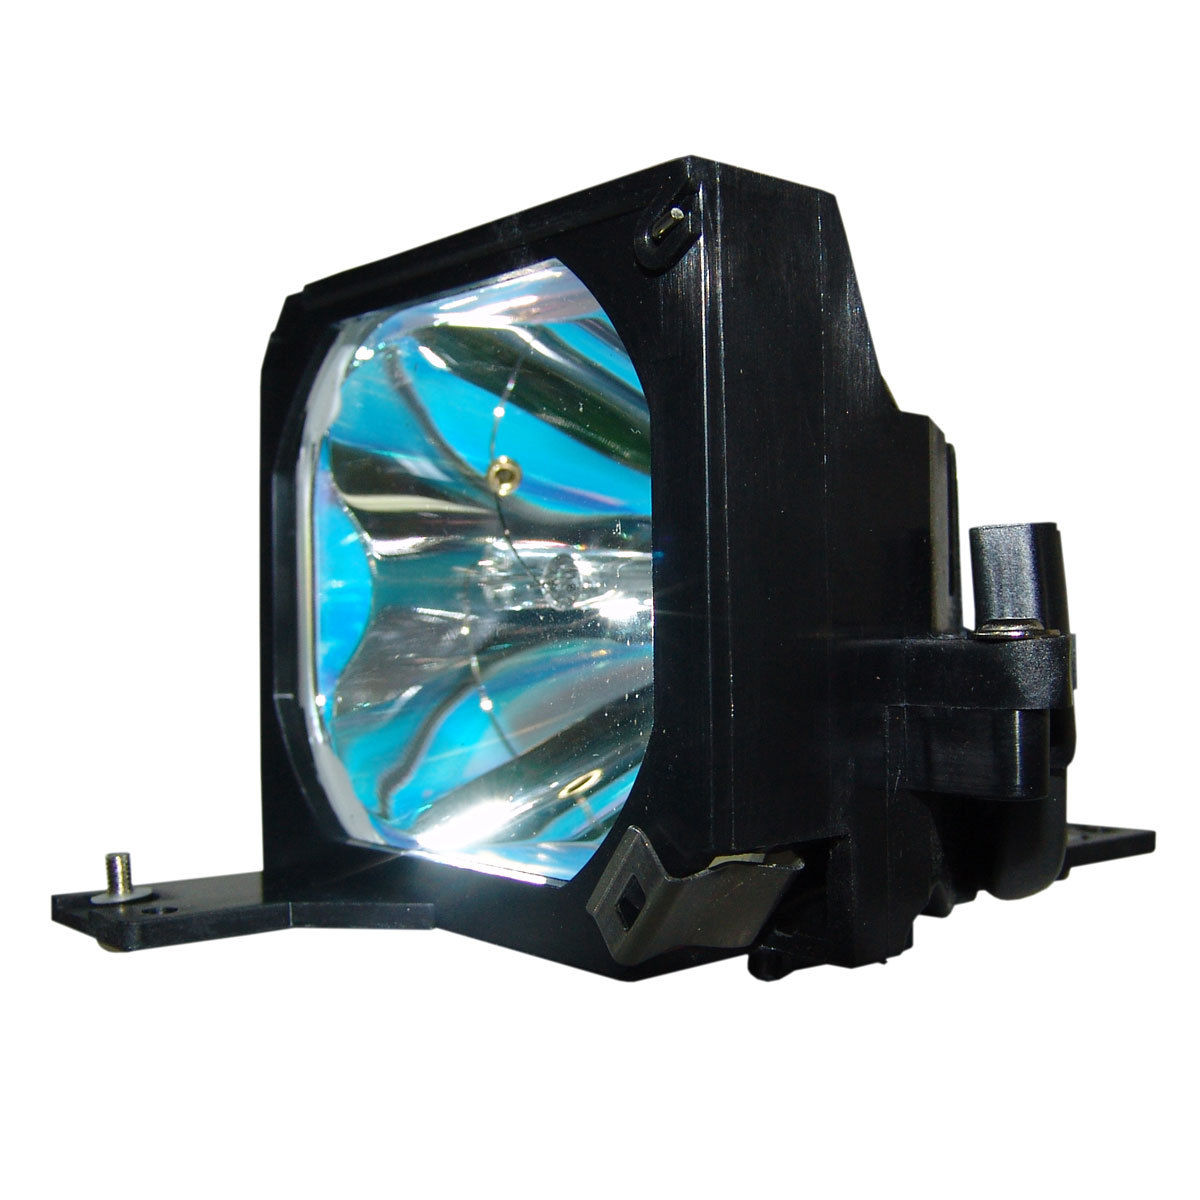 Projector Lamp Bulb ELPLP13 V13H010L13 for Epson EMP-50 EMP-70 with housing osram lamp housing for epson v11h369020 projector dlp lcd bulb